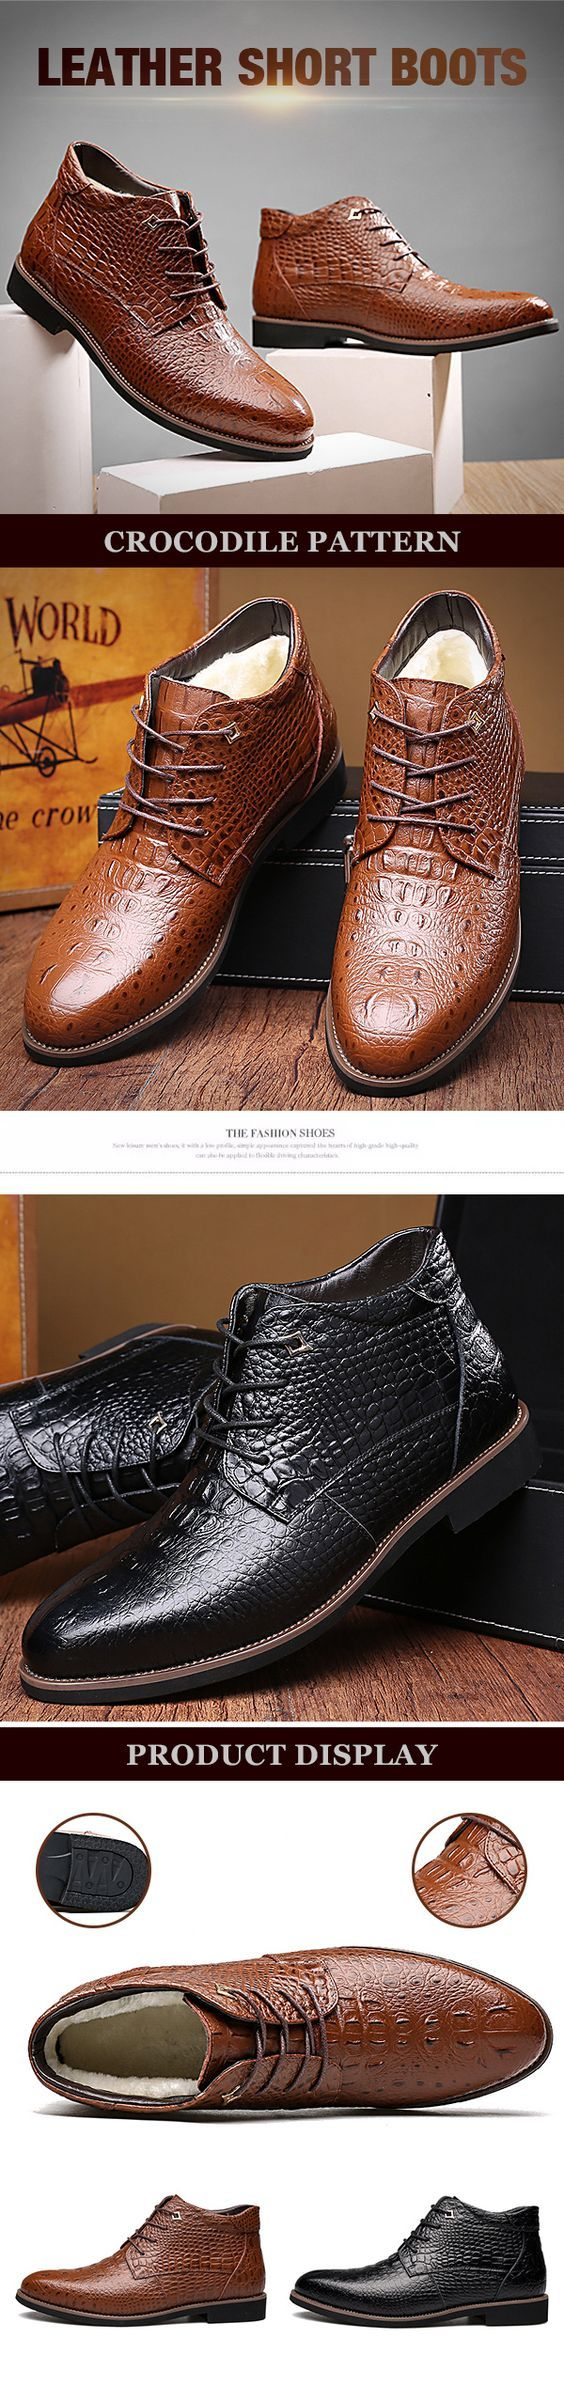 casual shoes, summer shoes 2017 casual, casual shoes outfit, fall shoes casual, casual dress shoes, stylish shoes, shoes casual, cute casual shoes, casual work shoes, business casual shoes, prom dress shoes, jeans shoes outfit, casual shoes 2017, summer shoes, professional work shoes, business casual dress shoes, denim shoes outfit,